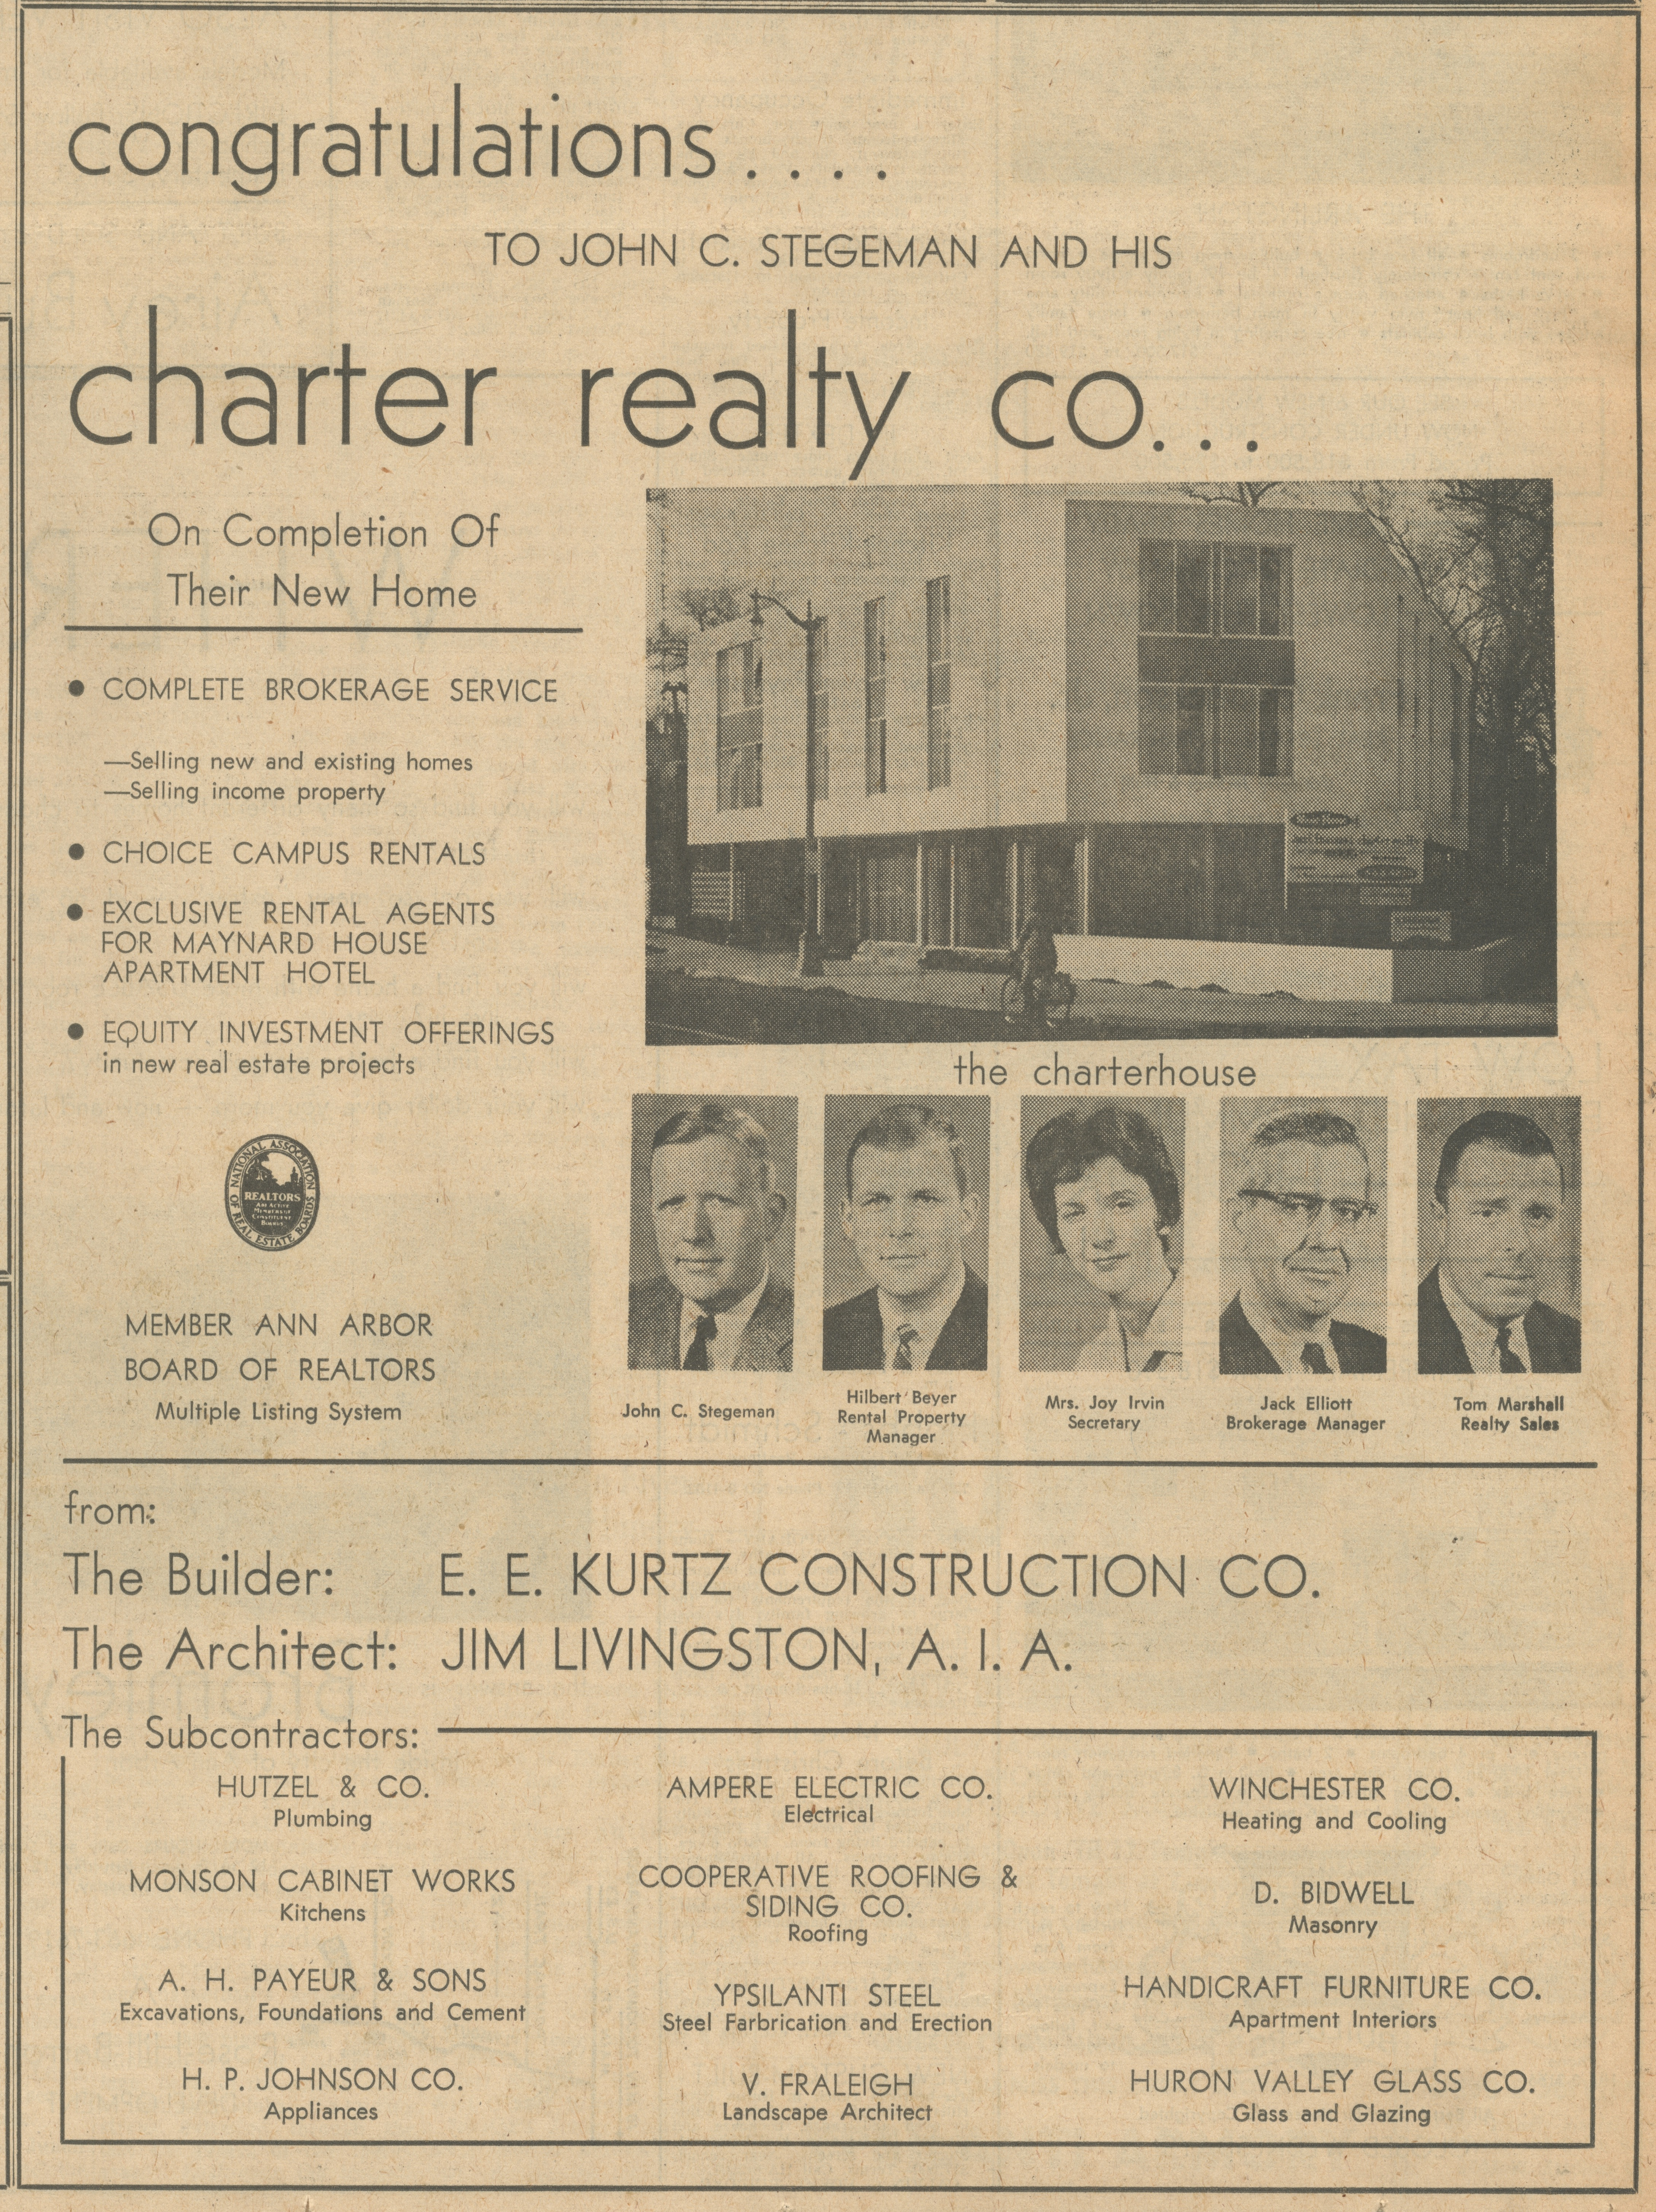 Charter Realty Company image